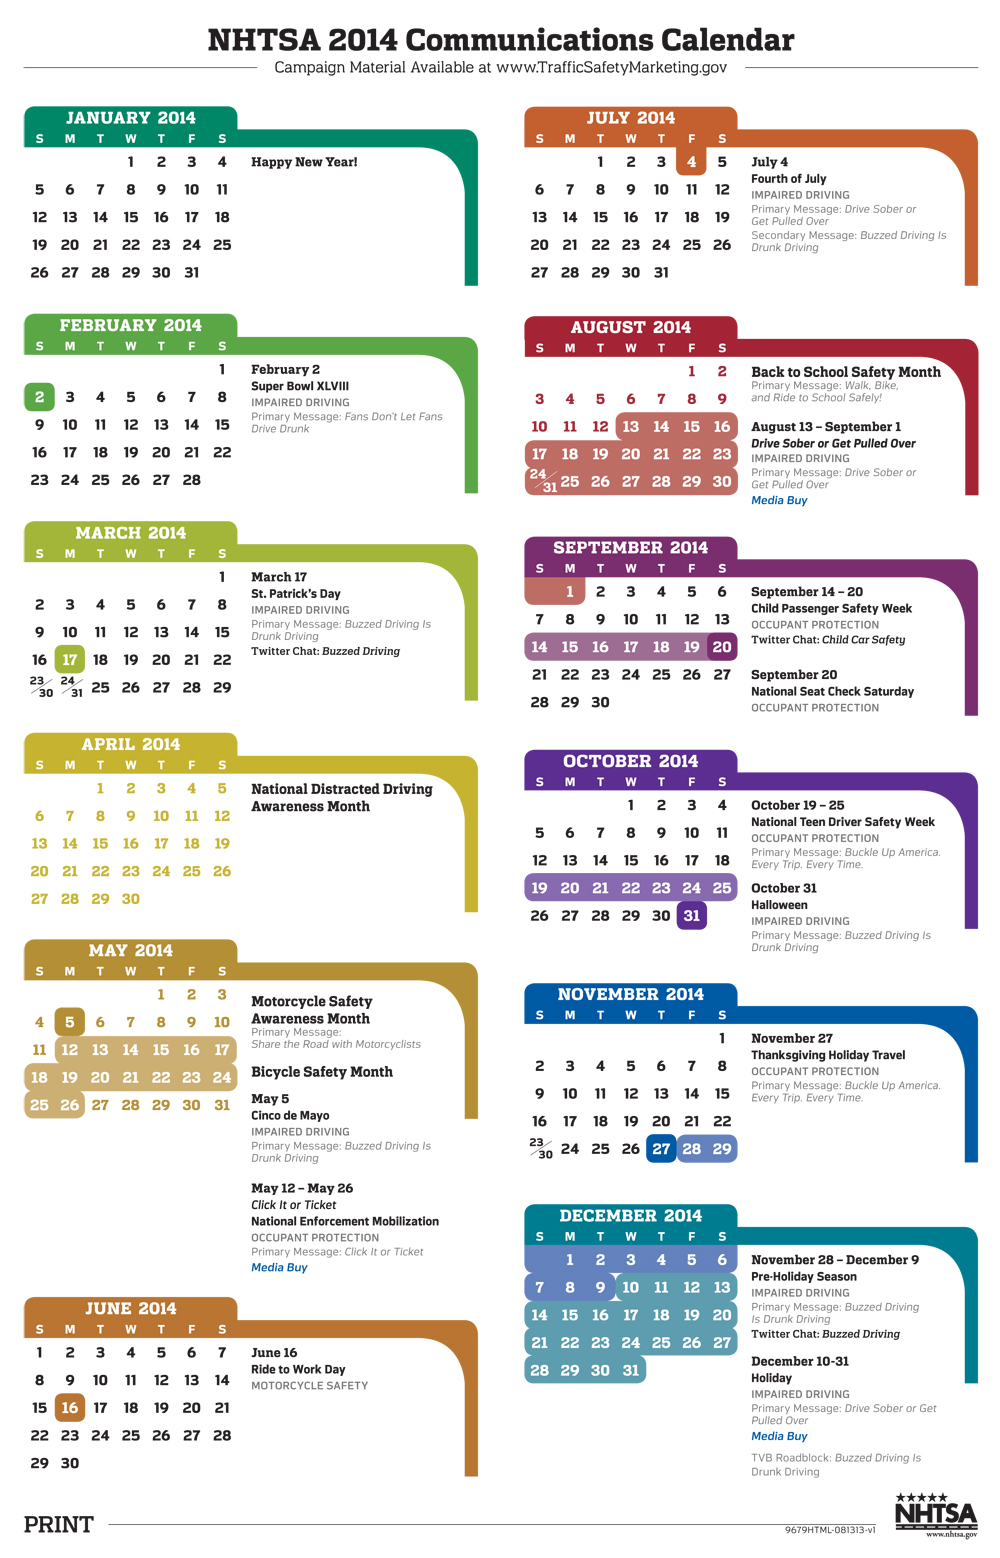 NHTSA | NHTSA 2014 Communications Calendar